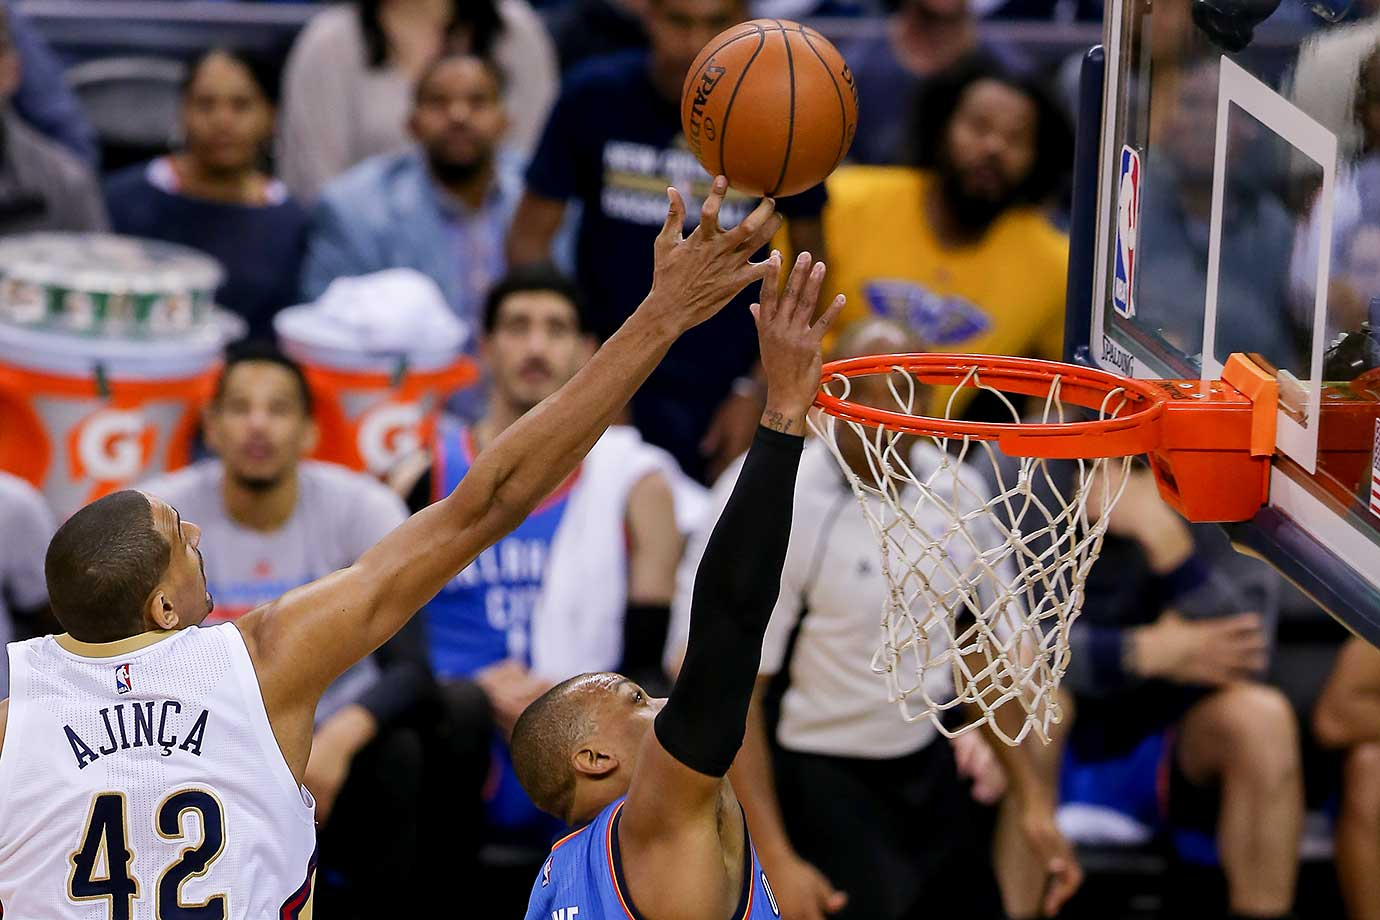 New Orleans center Alexis Ajinca blocks a shot during a game against the Oklahoma City Thunder.